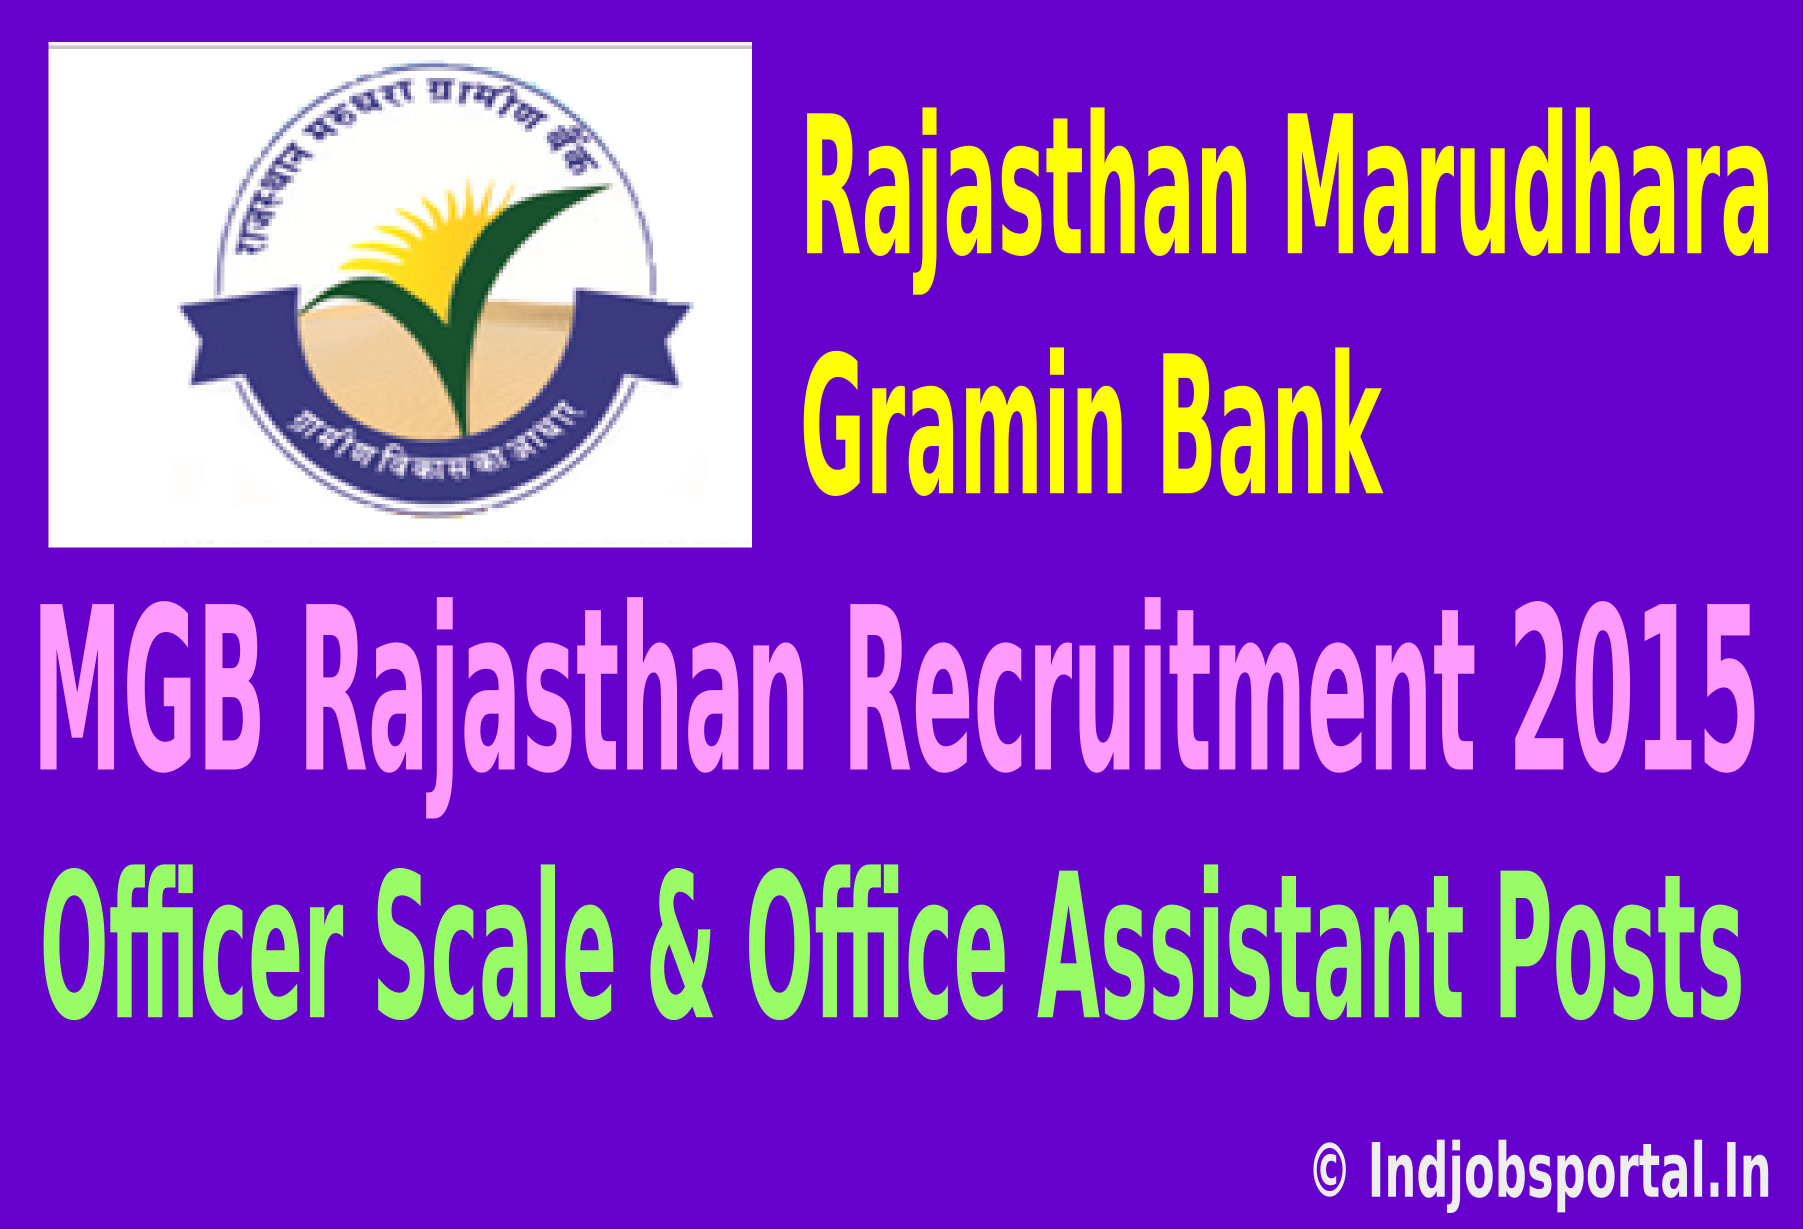 current vacancy in bank 2015 in rajasthan